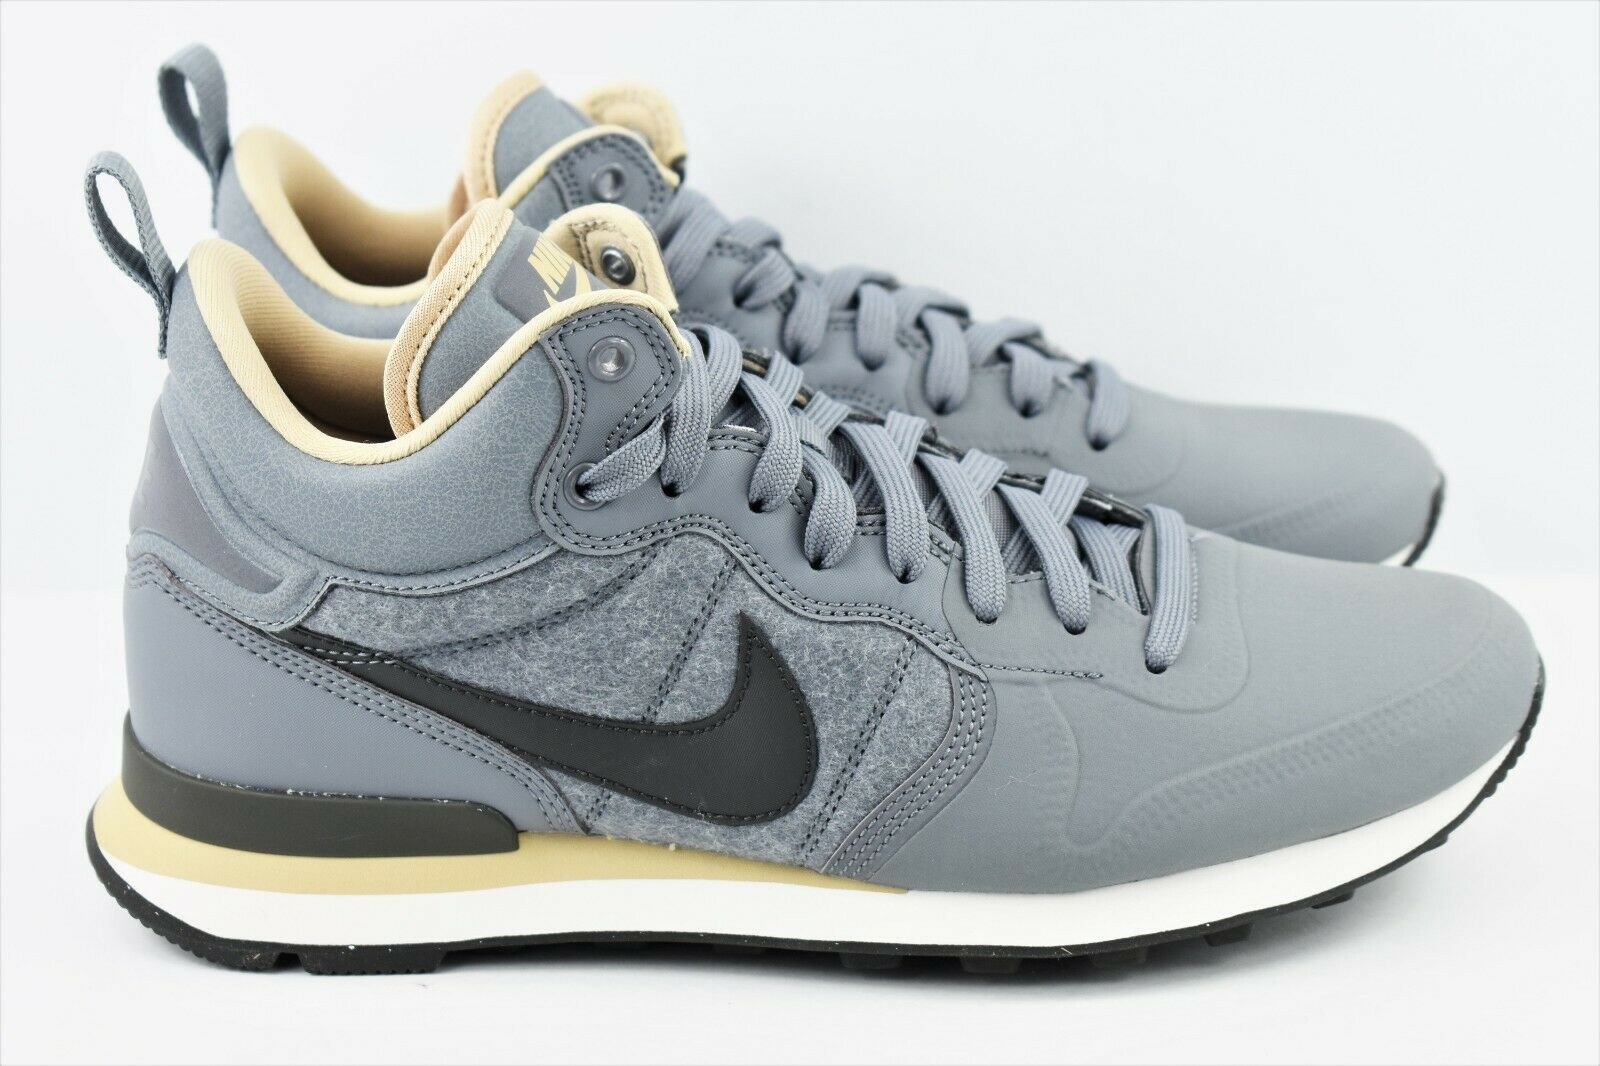 Nike Internationalist Utility Mens Size 9 shoes Wool Grey Pewter 857937 003